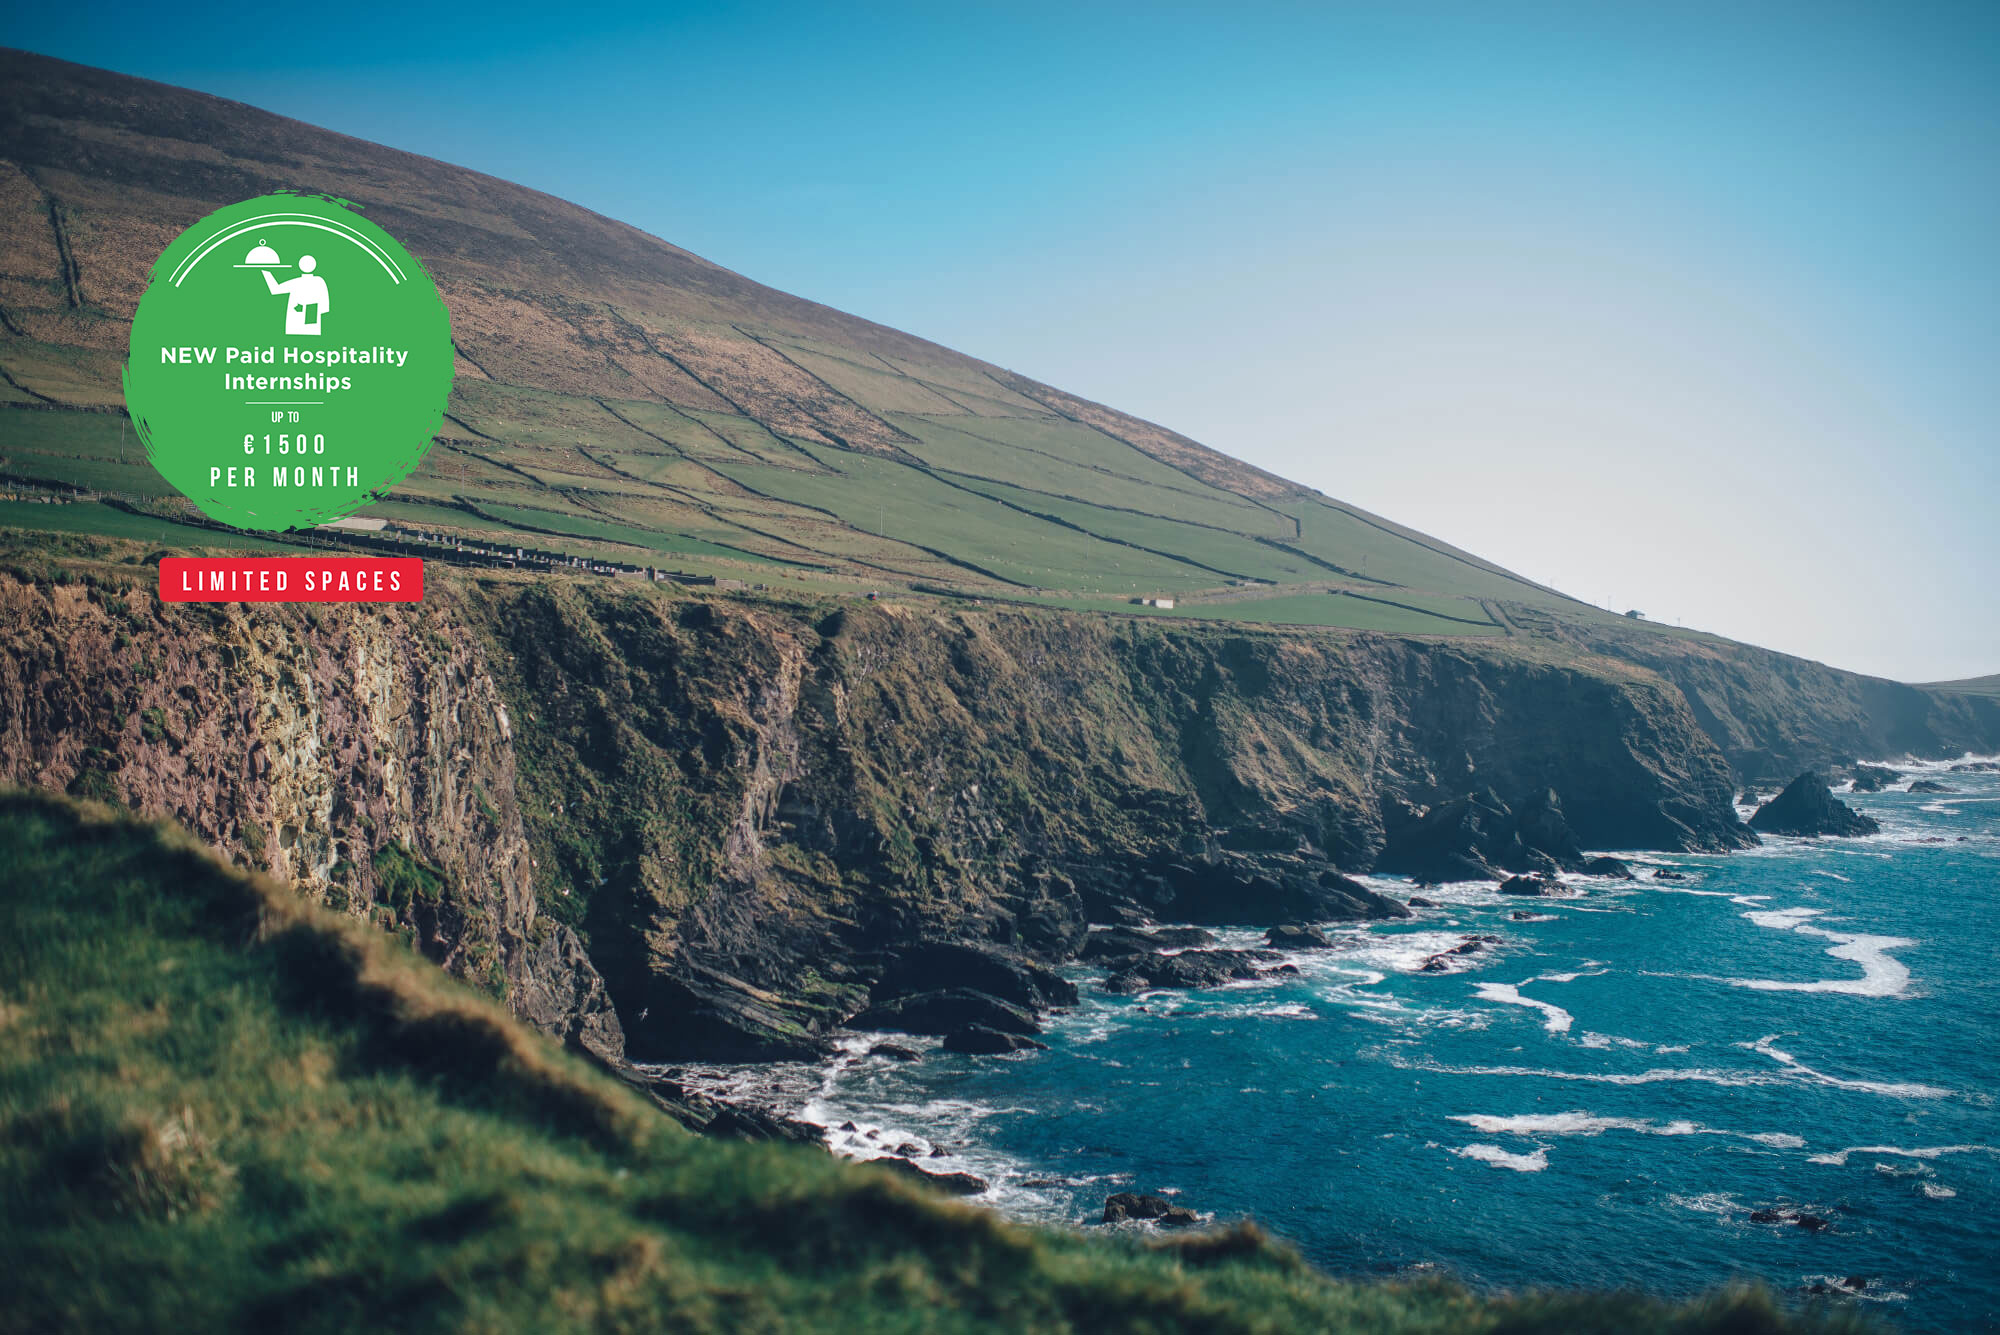 DISCOVER THE REAL IRELAND